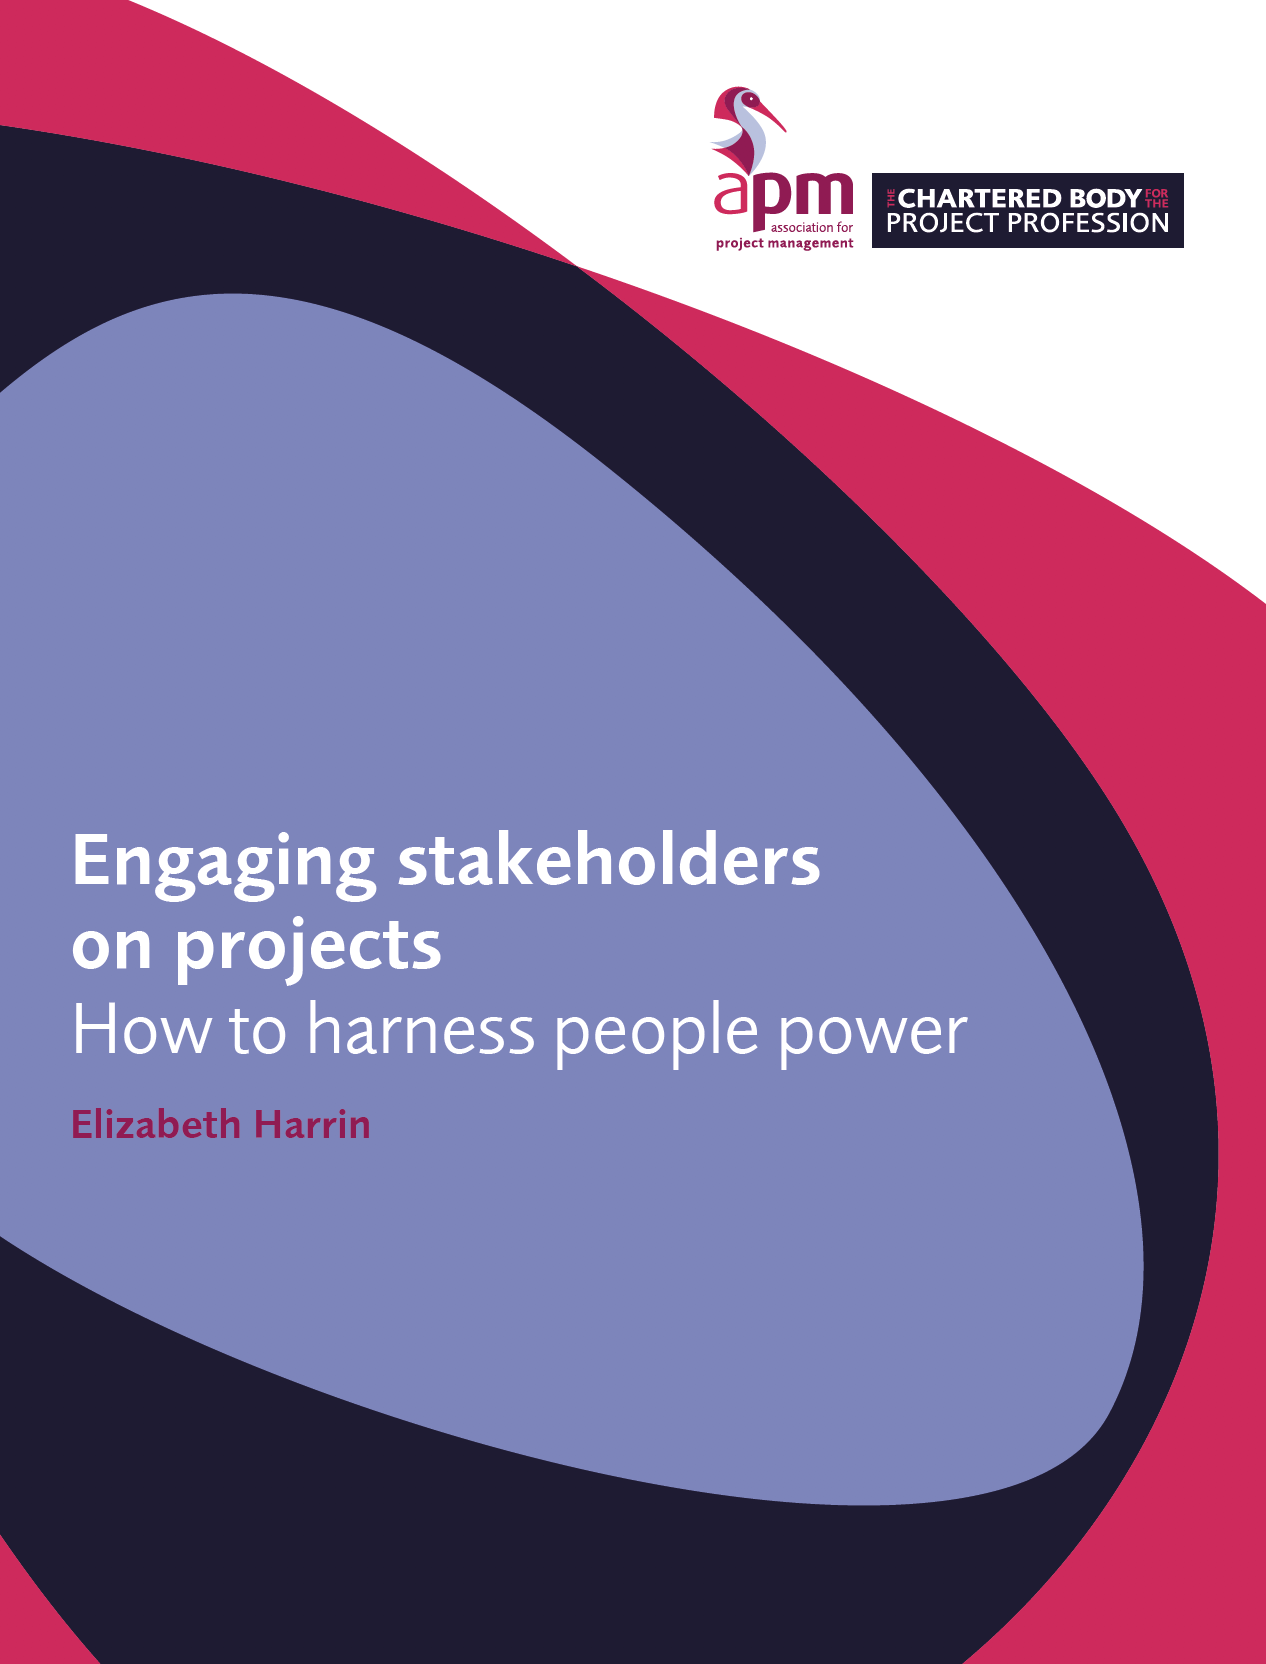 Engaging stakeholders on projects - How to harness people power